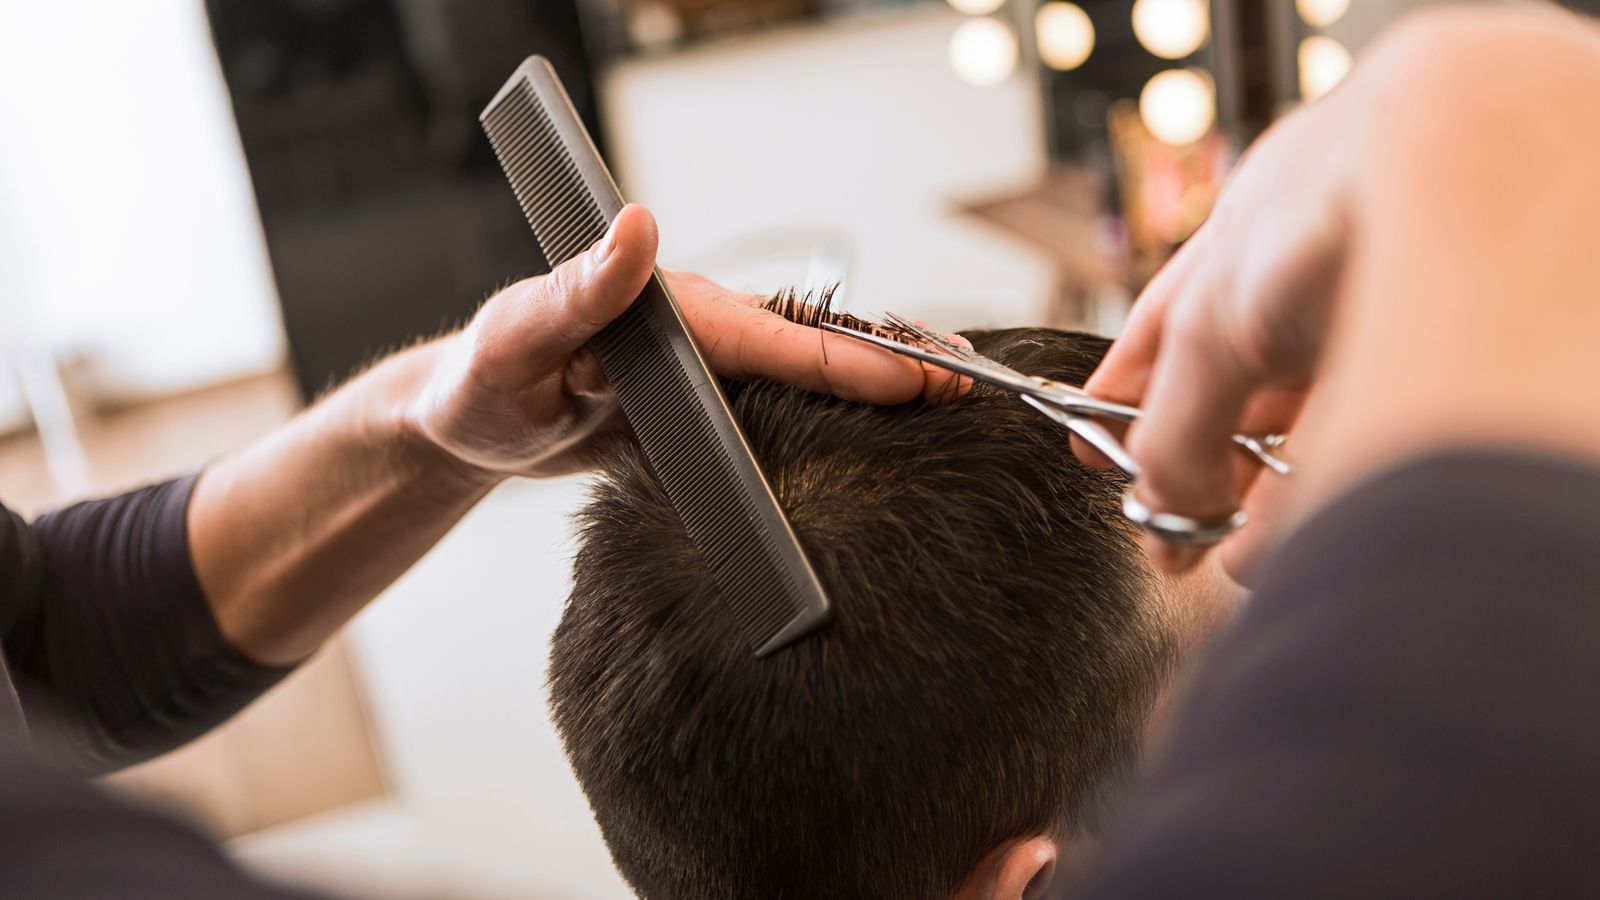 Supercuts rescue deal close to salvaging 1,000 jobs - EpicNews